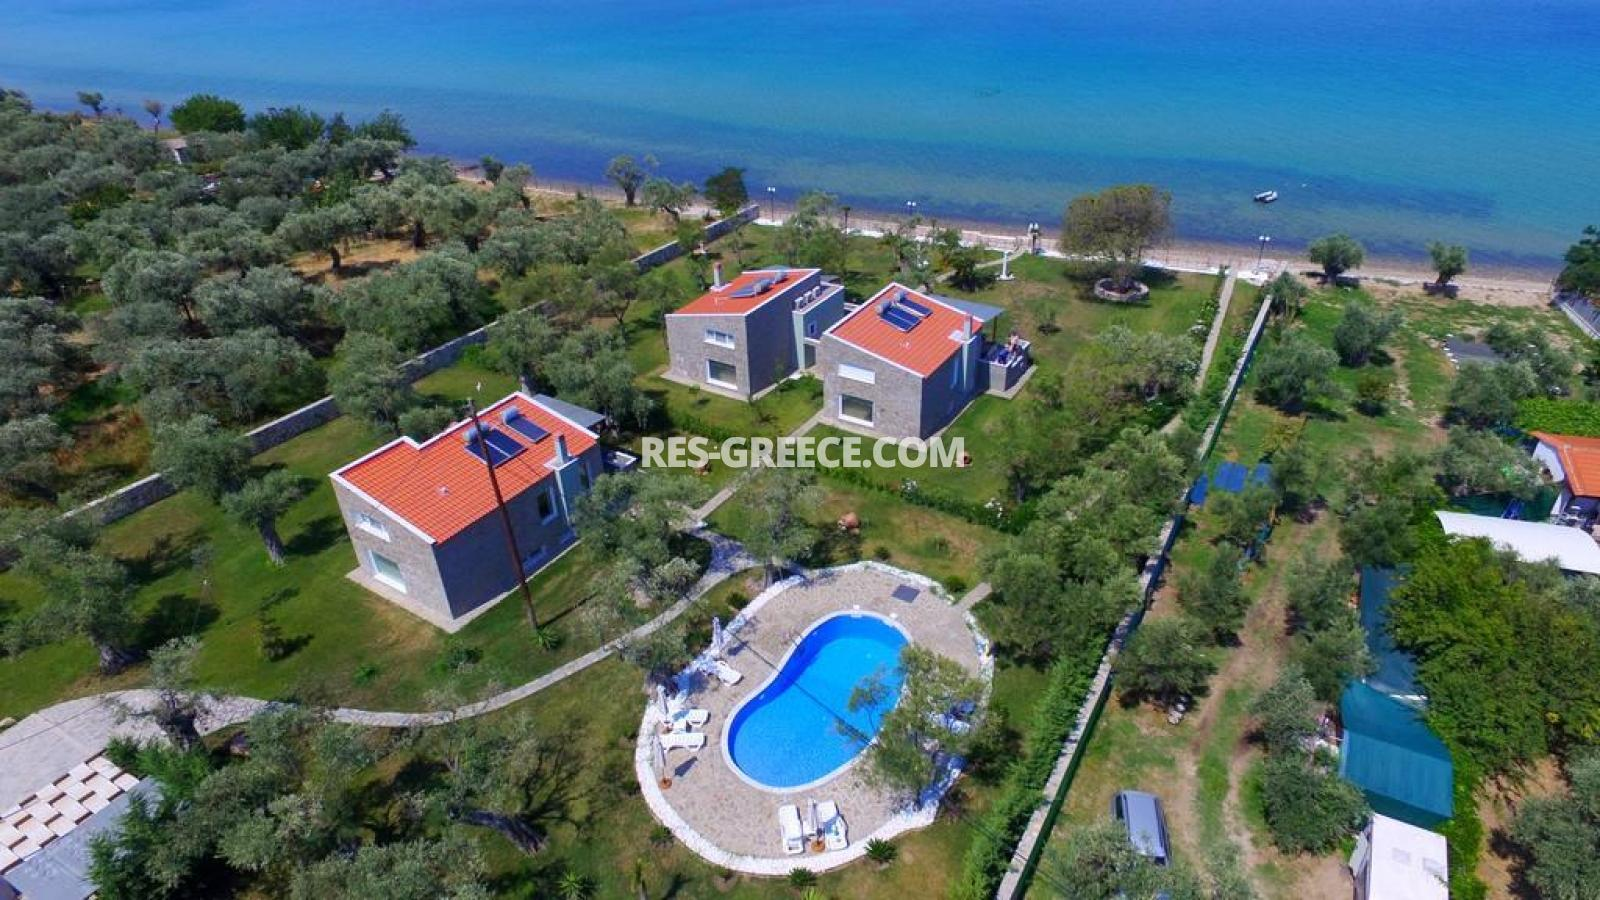 Arhondula Villa 3, Northern Aegean Islands, Greece - ready beachfront complex for rent on Thassos island with EOT licences - Photo 24